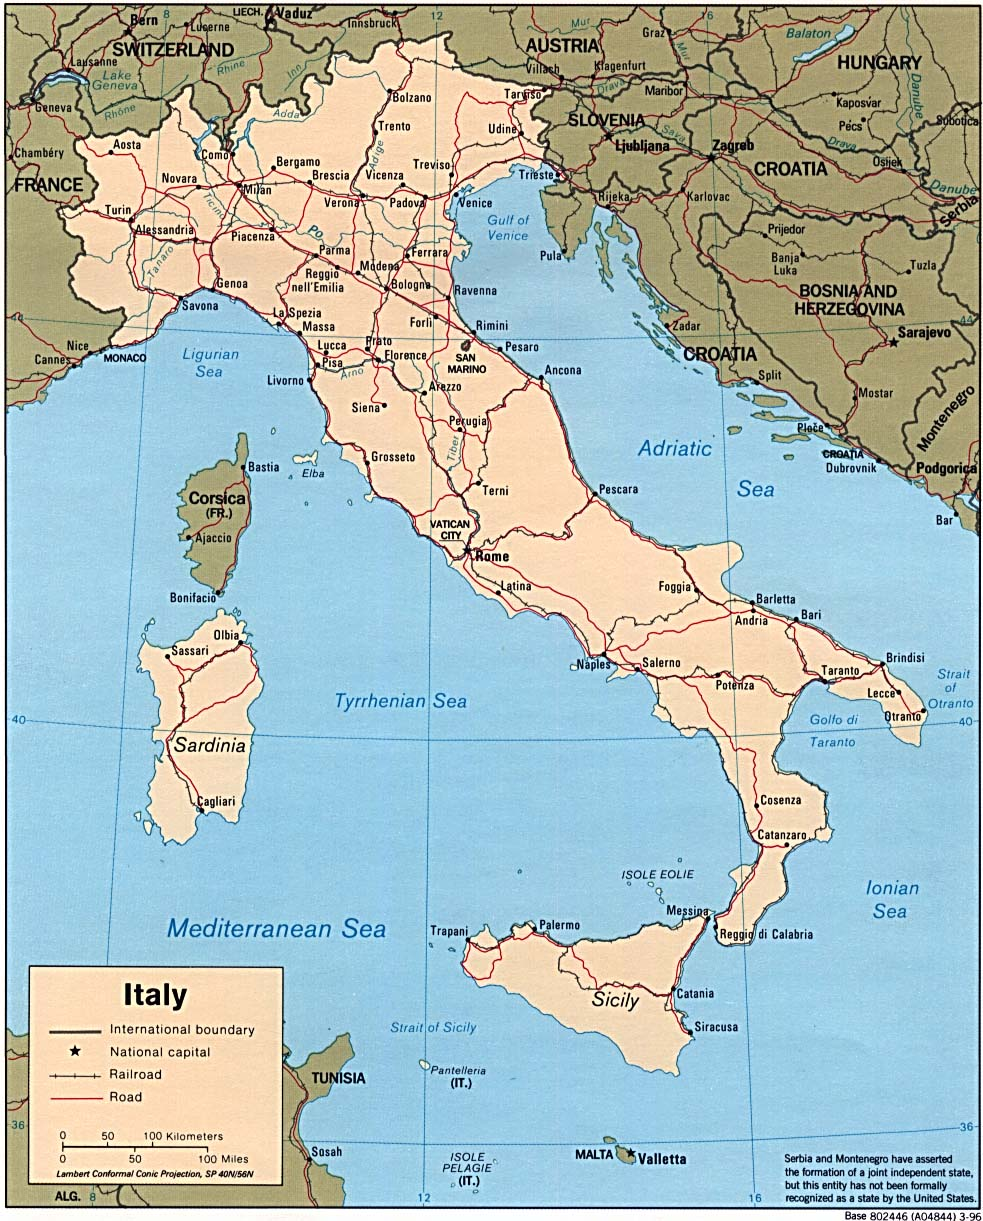 Italy Maps - Perry-Cas...